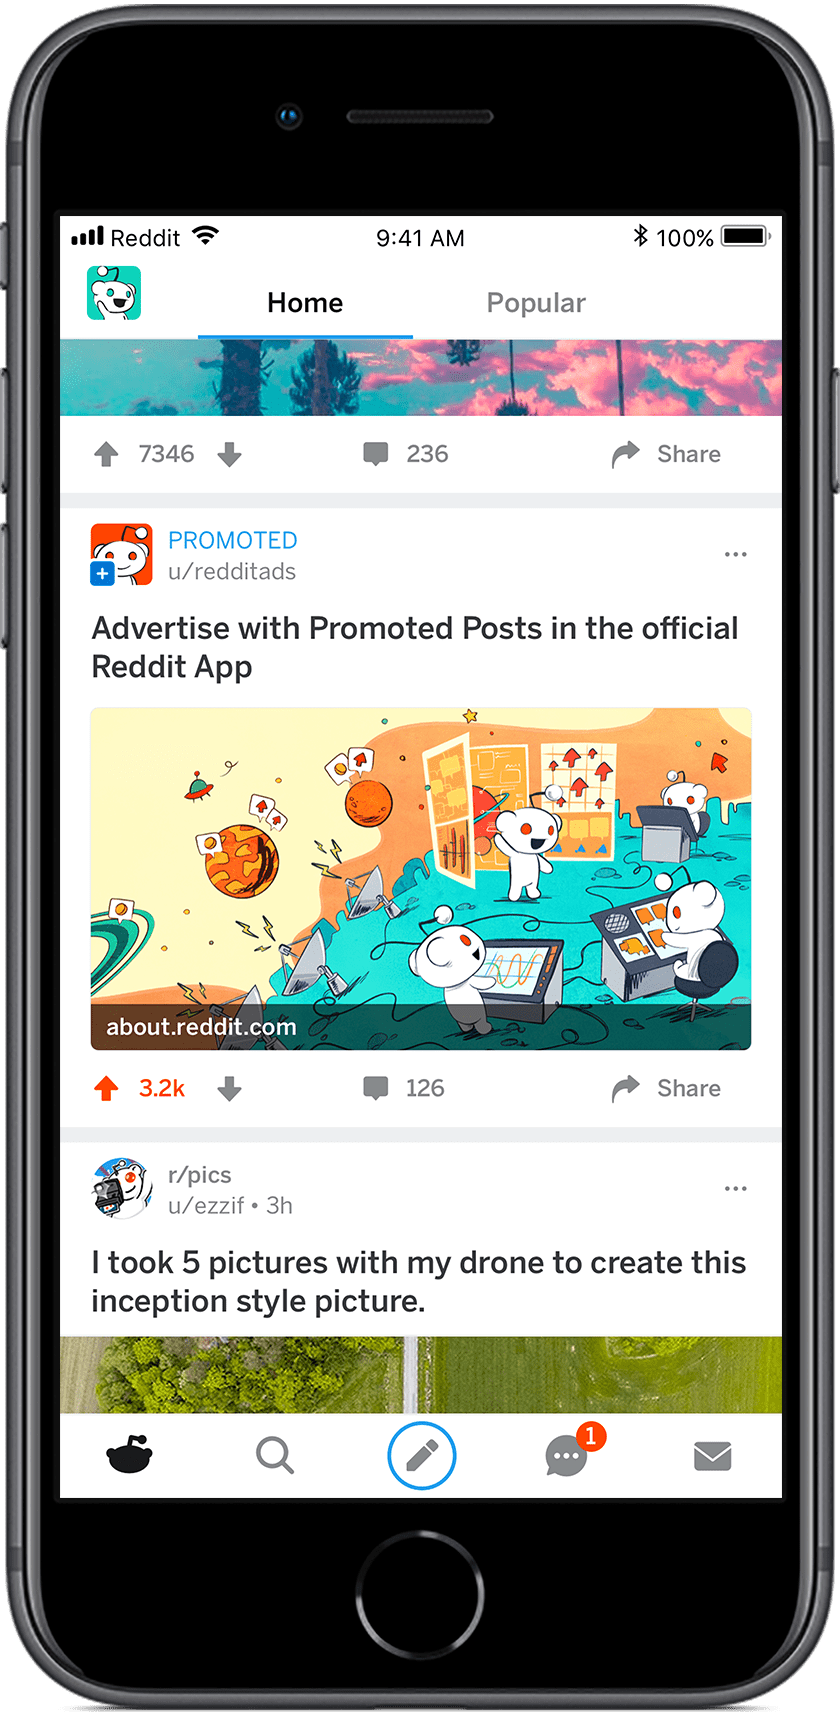 Reddit Launches New Promoted Posts for Mobile